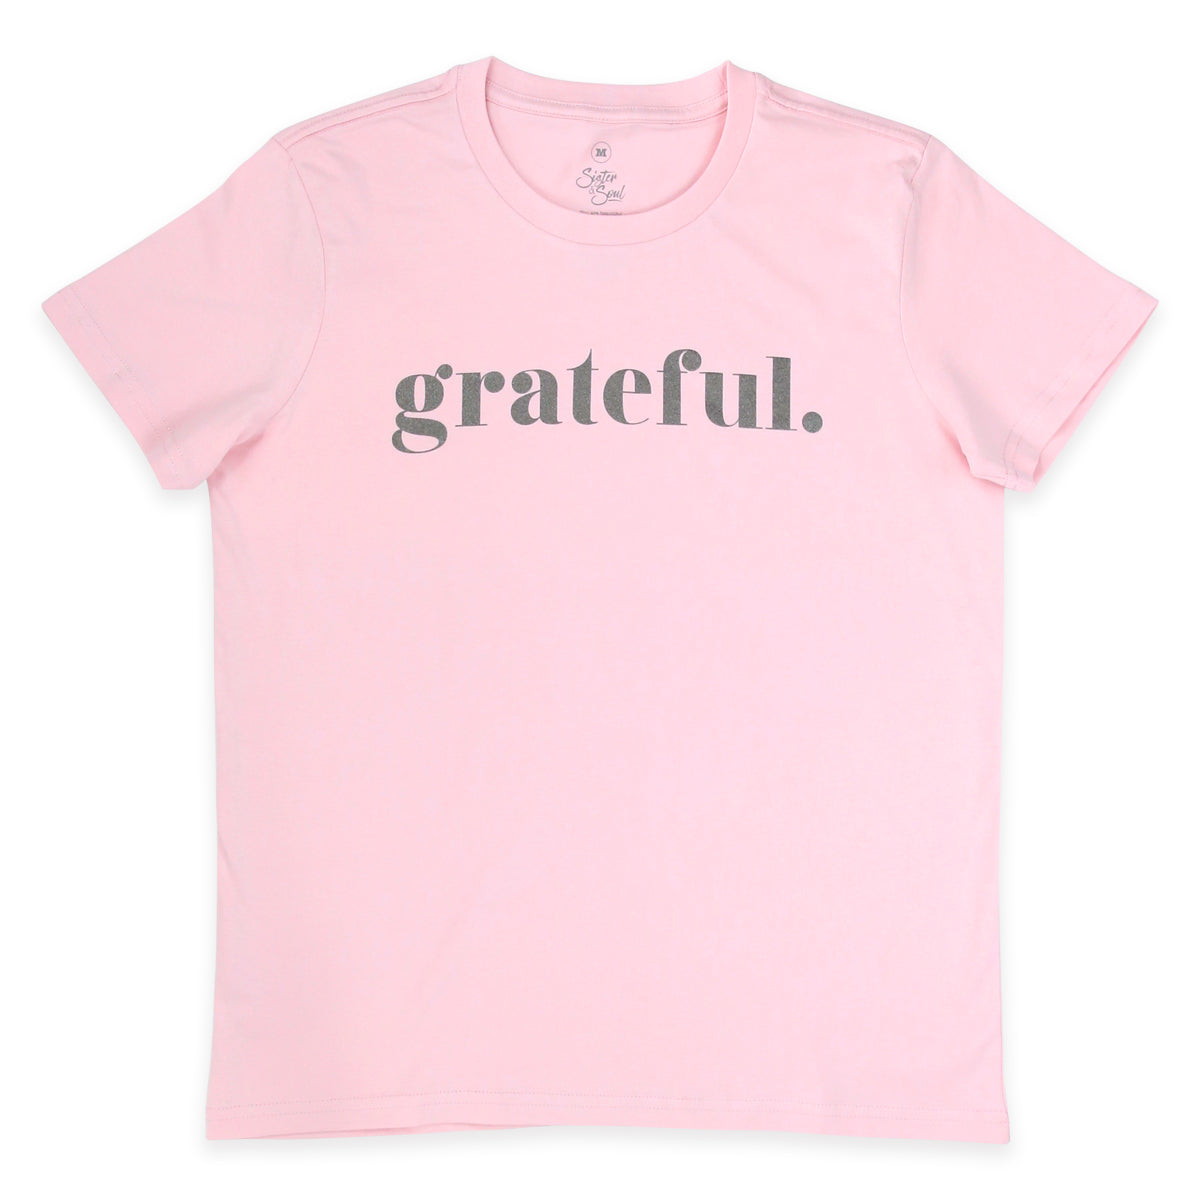 GRATEFUL - Pink Boxy Tee - Charcoal Shimmer Print